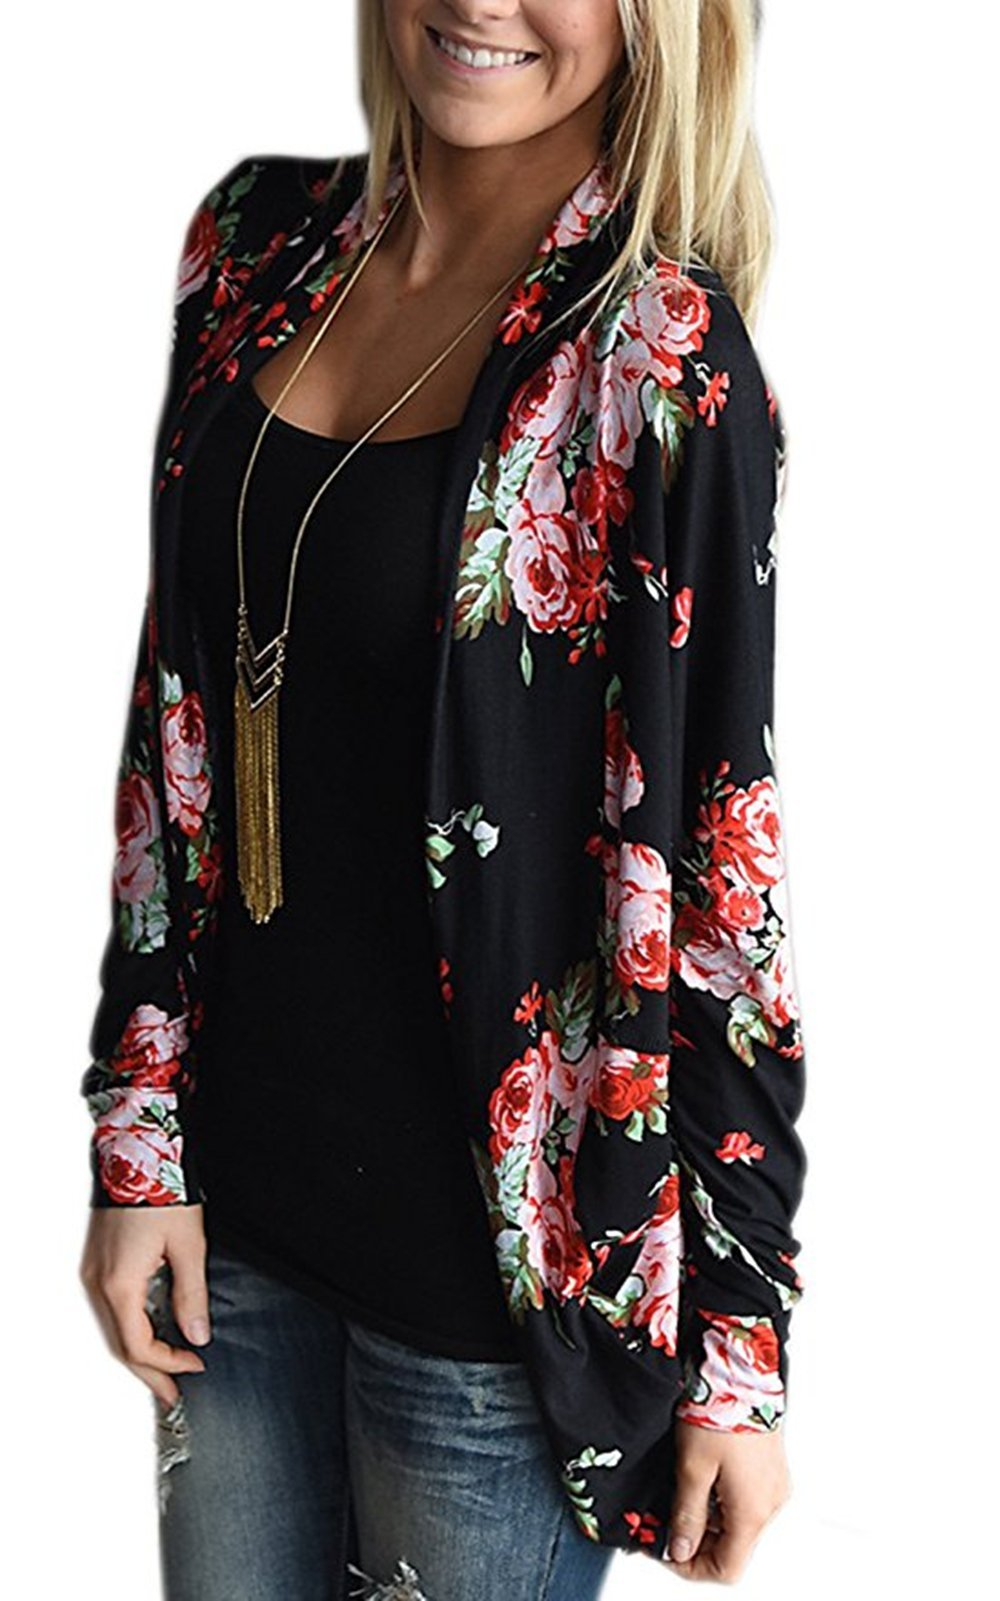 DDSOL Womens Kimono Cardigan Floral Long Sleeve Open Front Cardigans Cotton Cover up Jacket